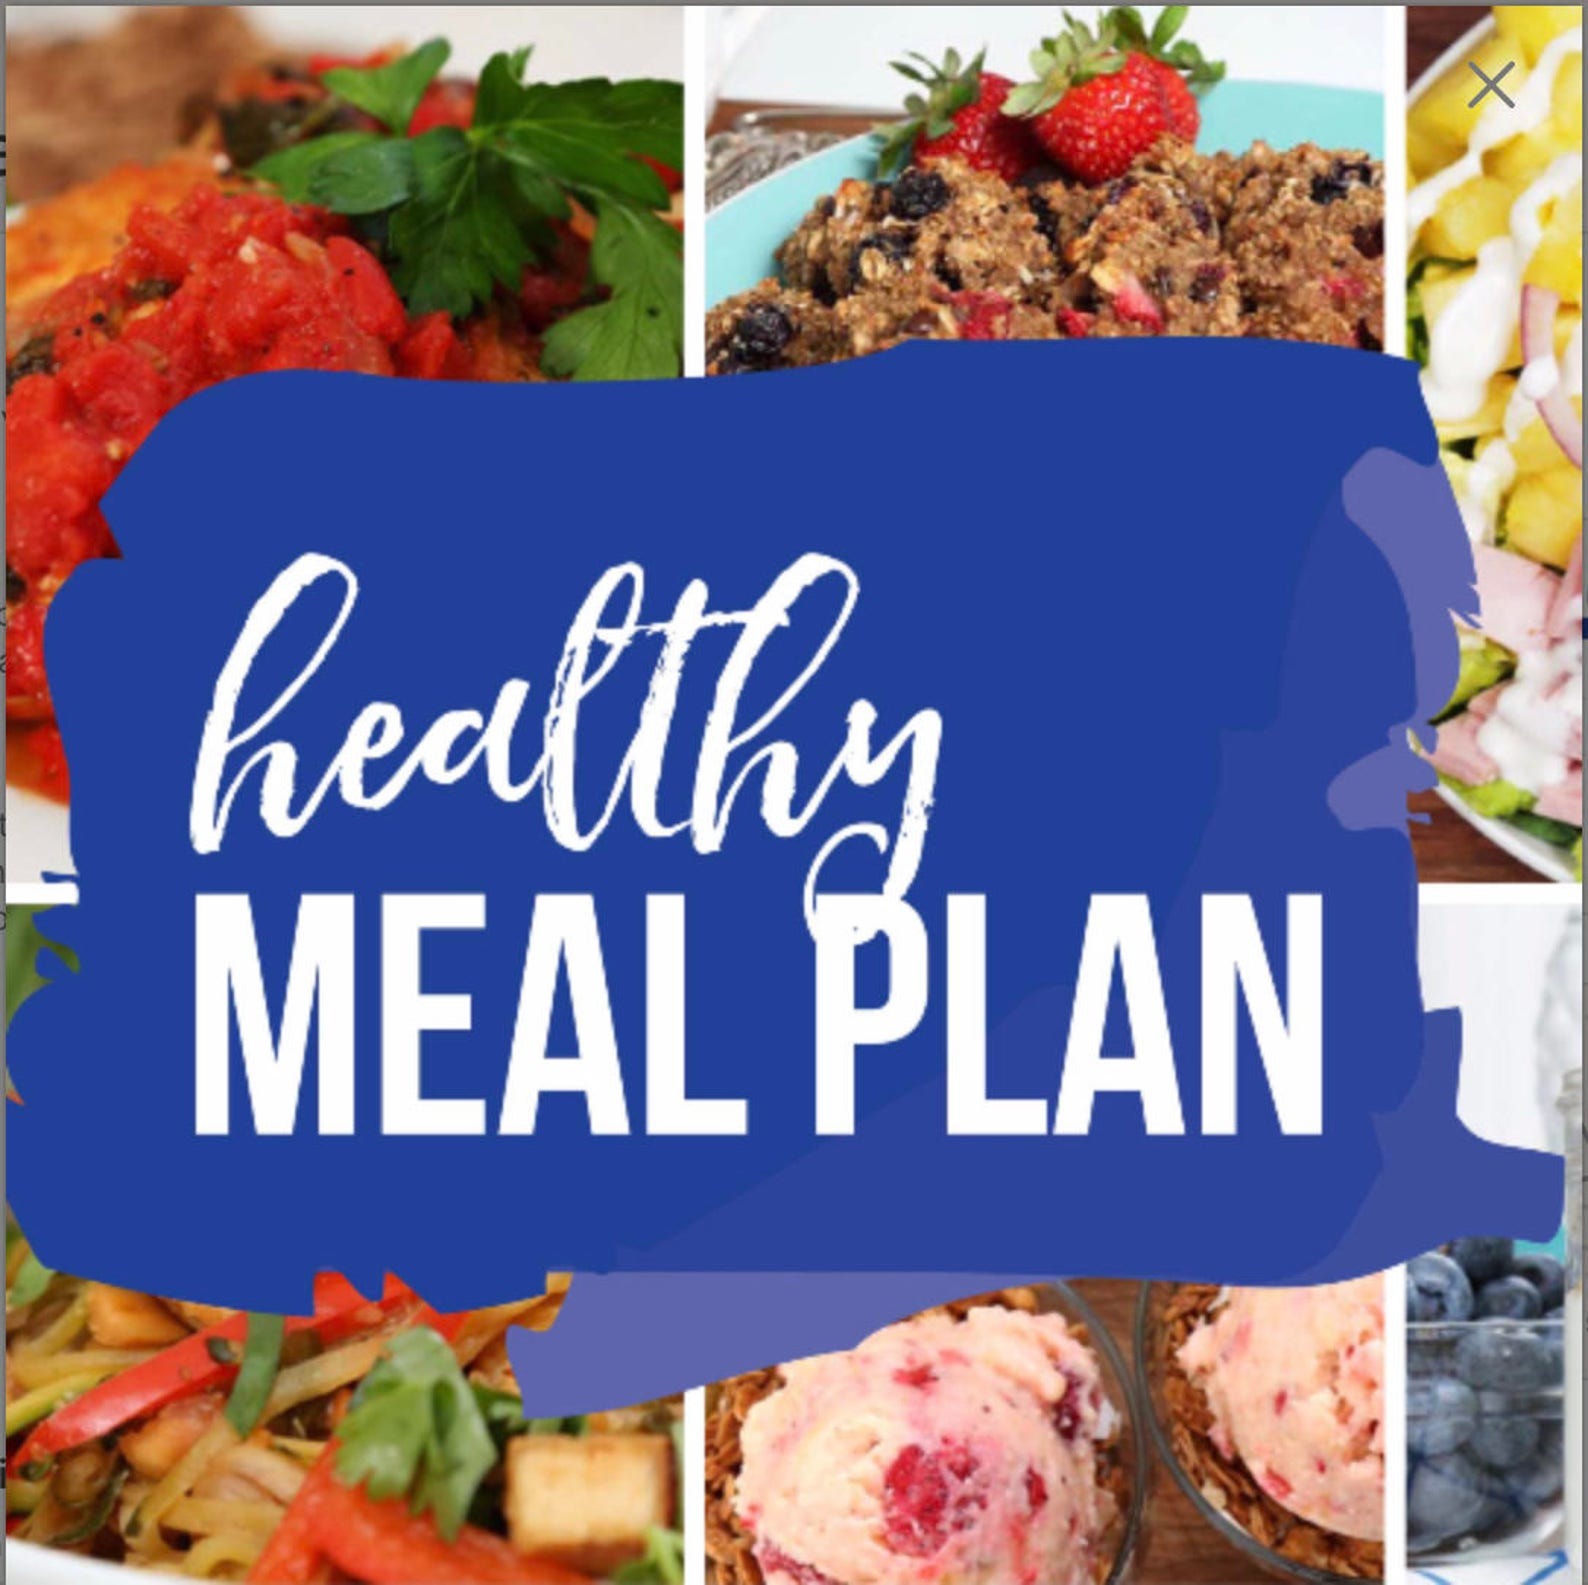 custom meal plan bundles - HD 1588×1585